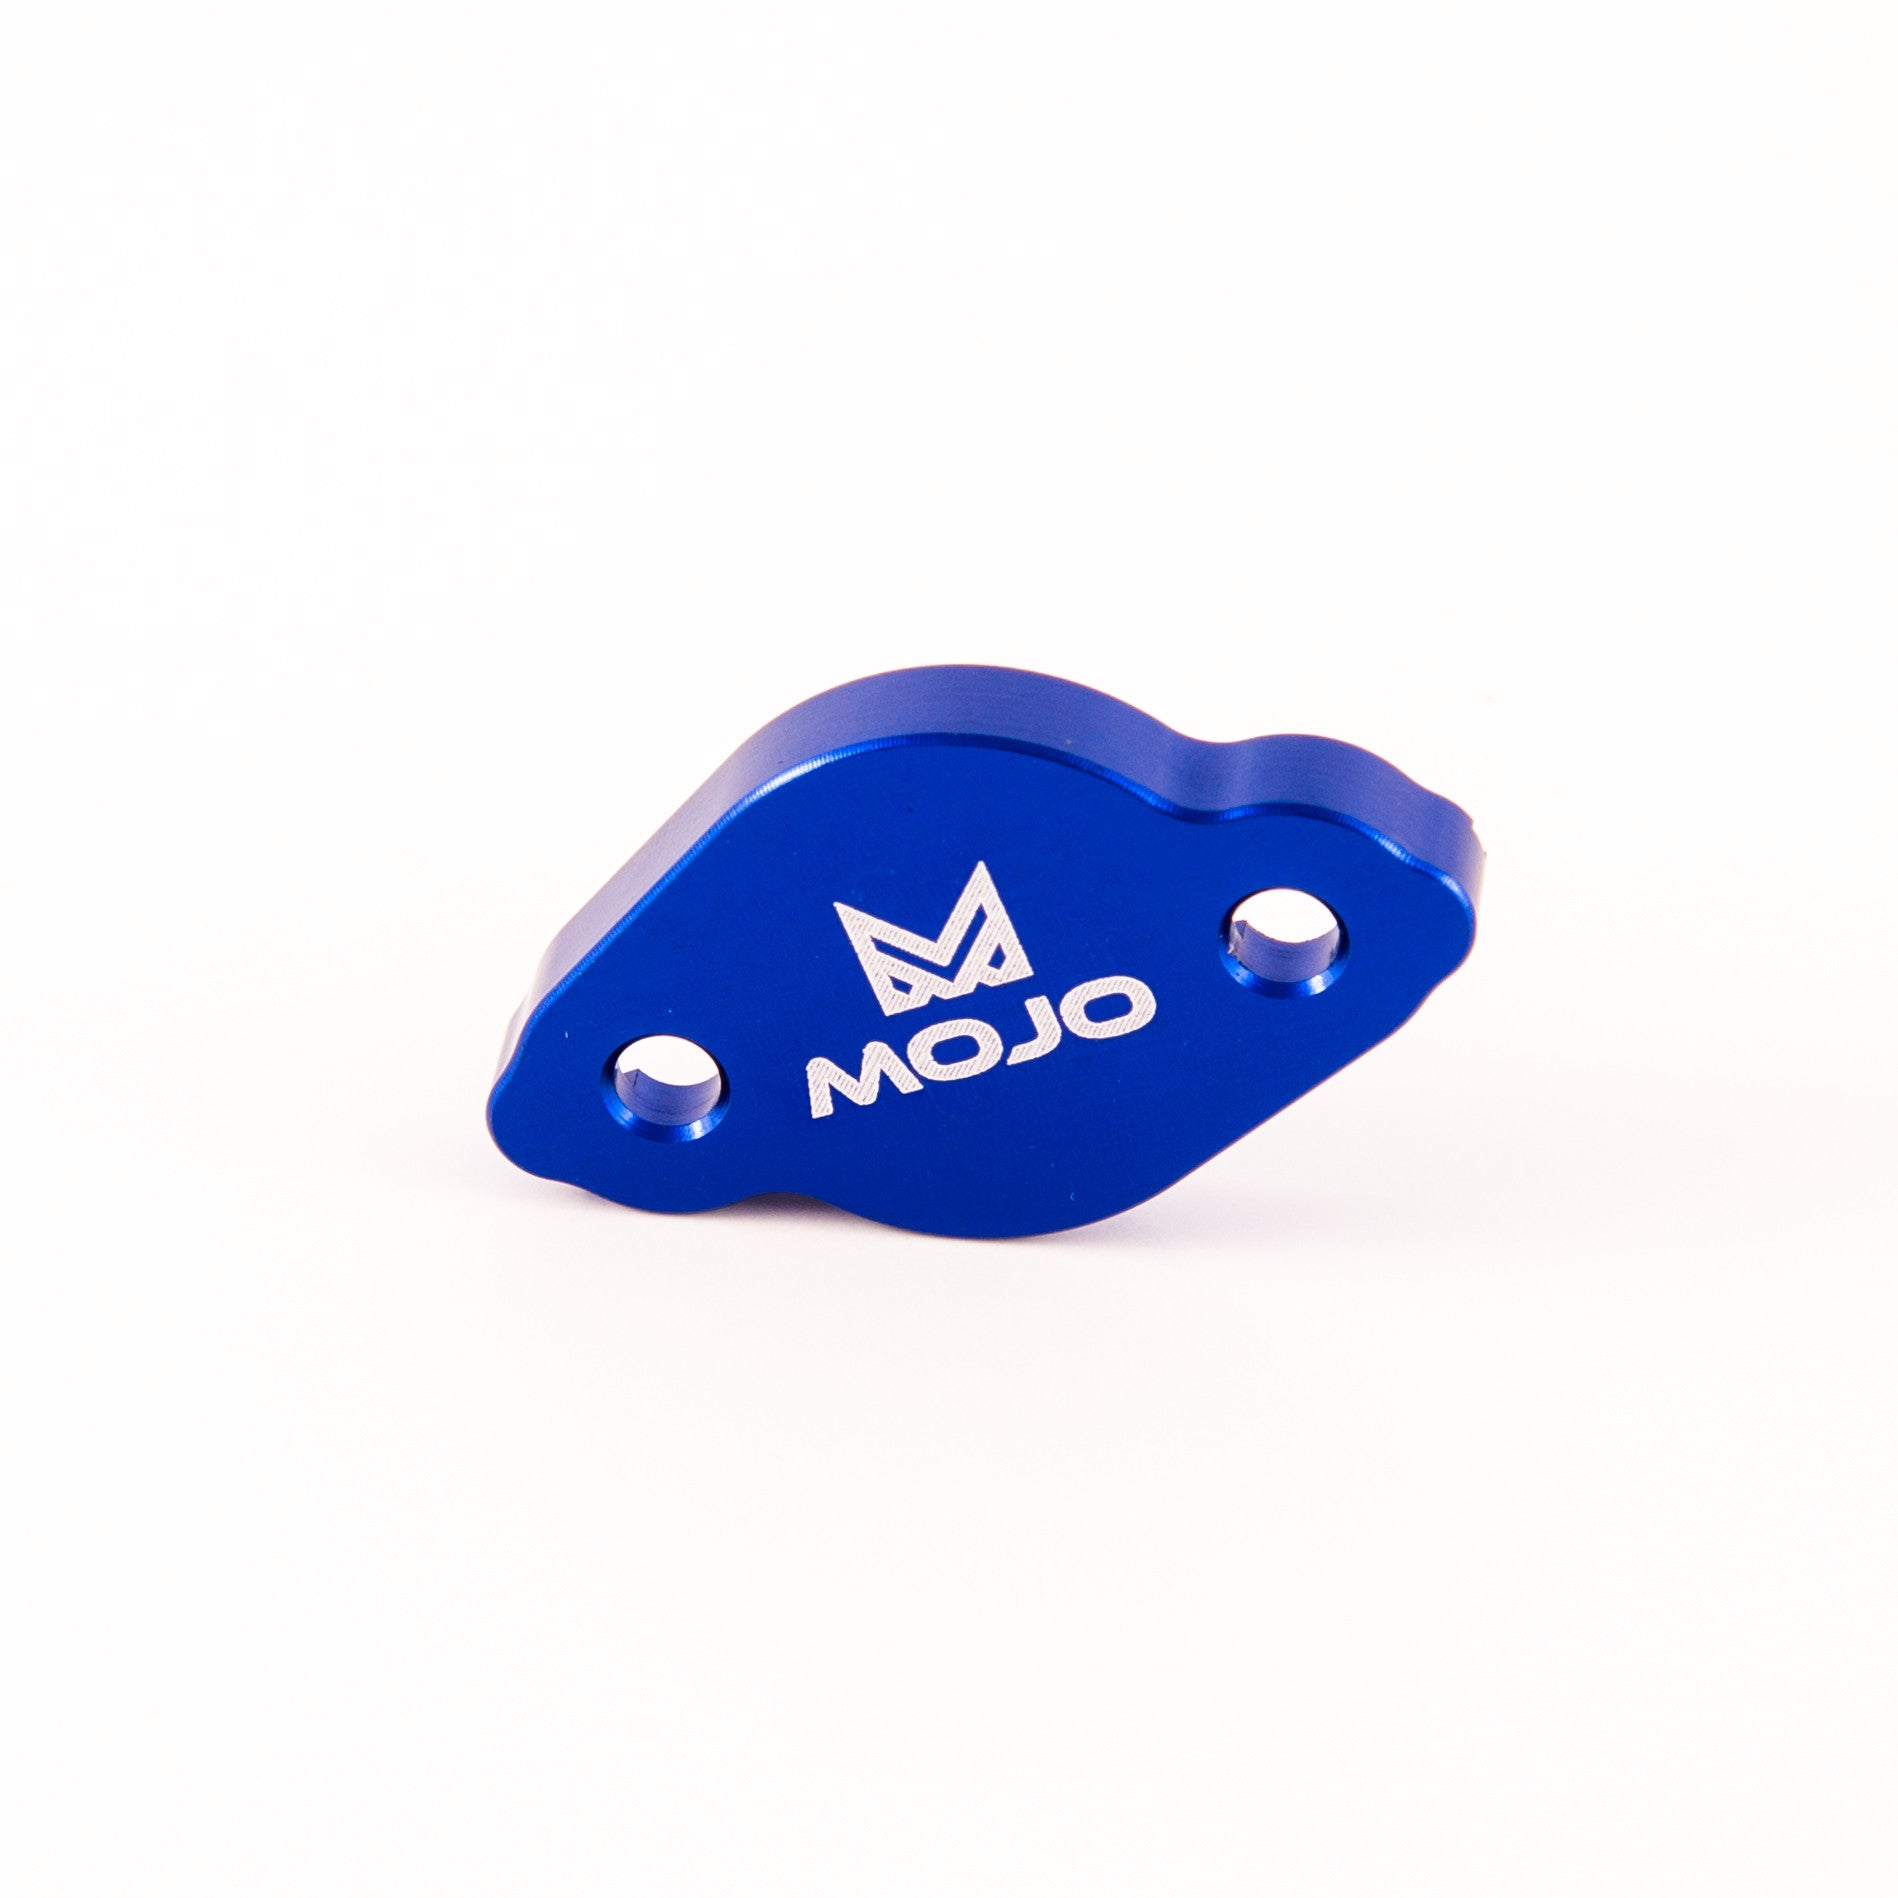 Yamaha Rear Brake Reservoir Cap -